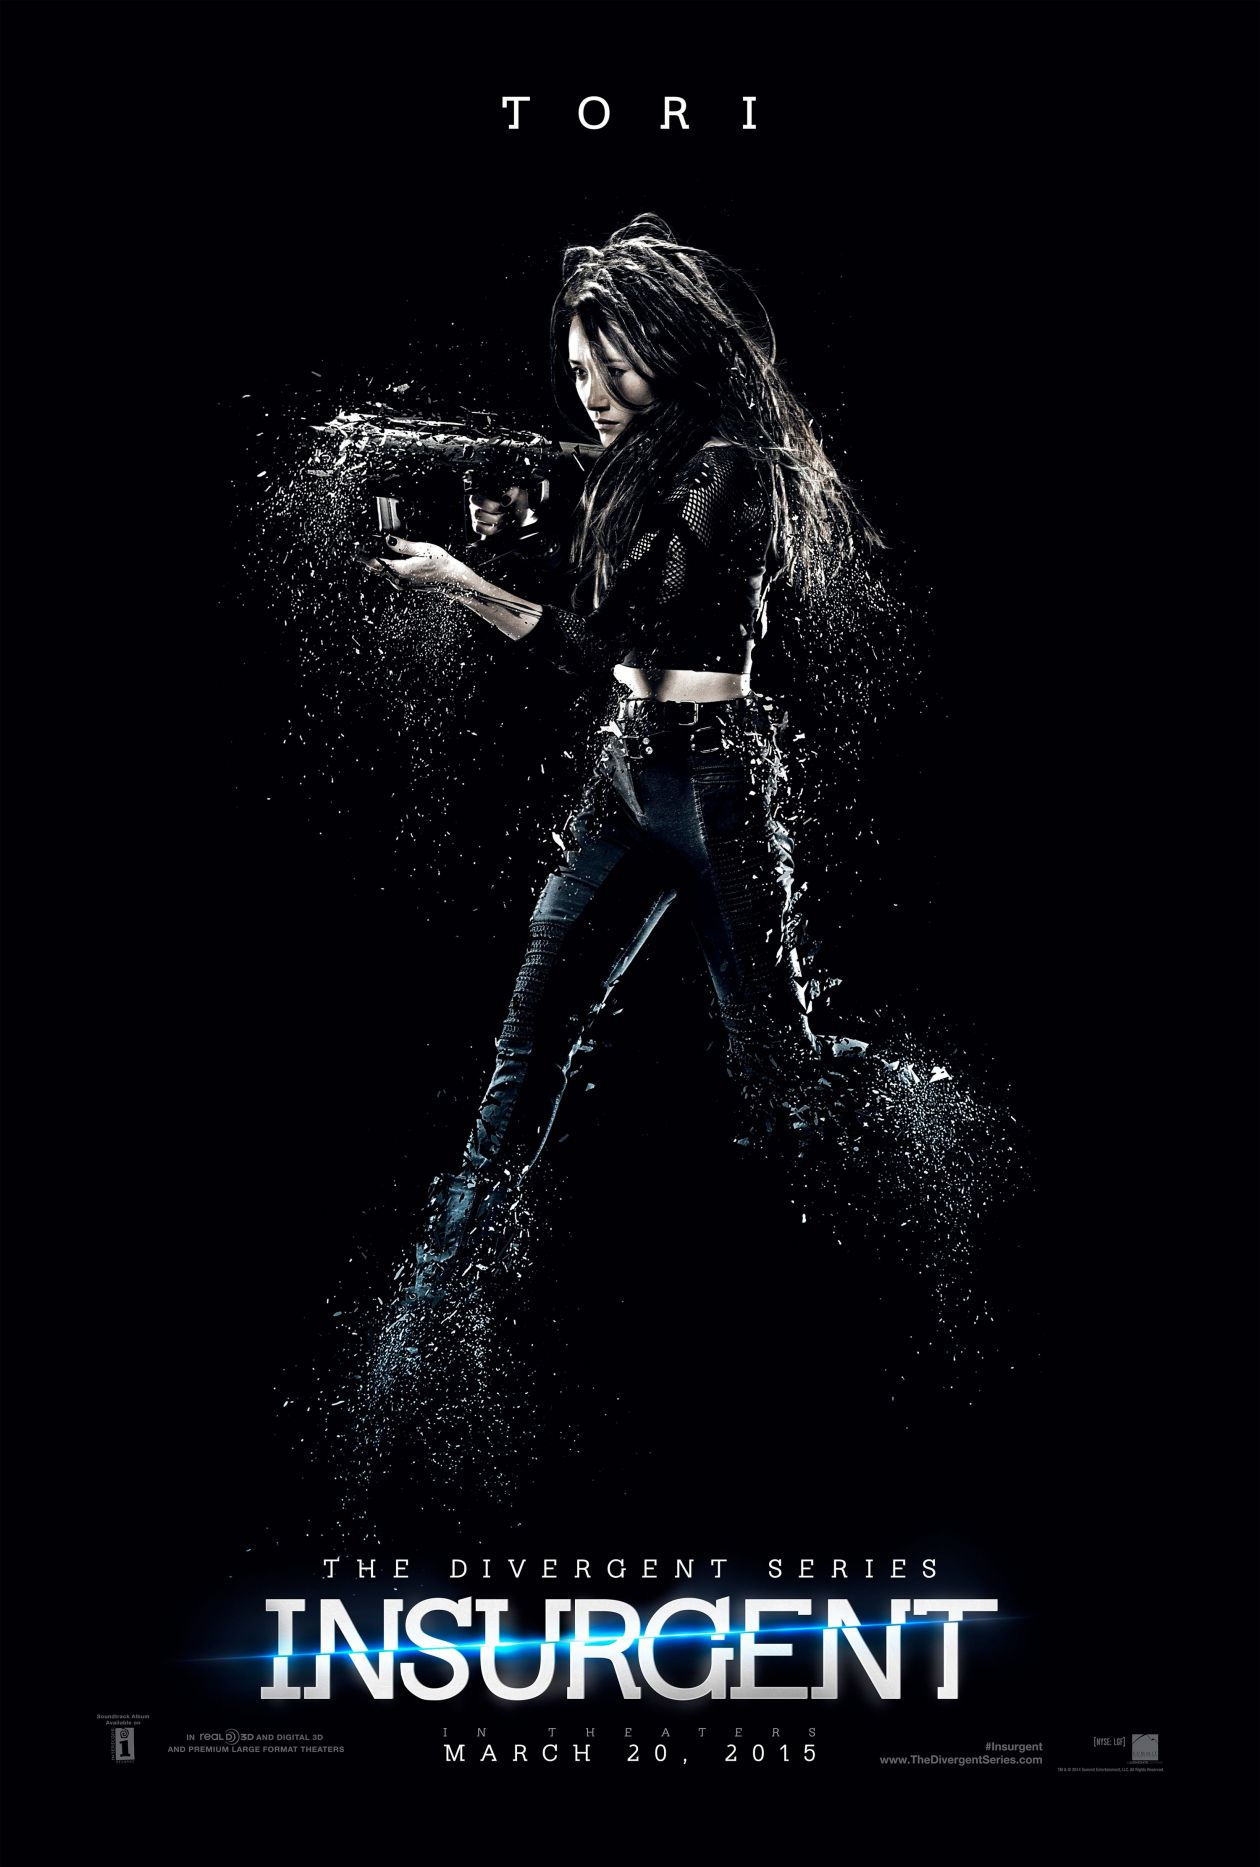 Maggie Q actress | Tori Wu / The Divergent Series: Insurgent / 2015 Robert Schwentke Movie Poster Affiche film